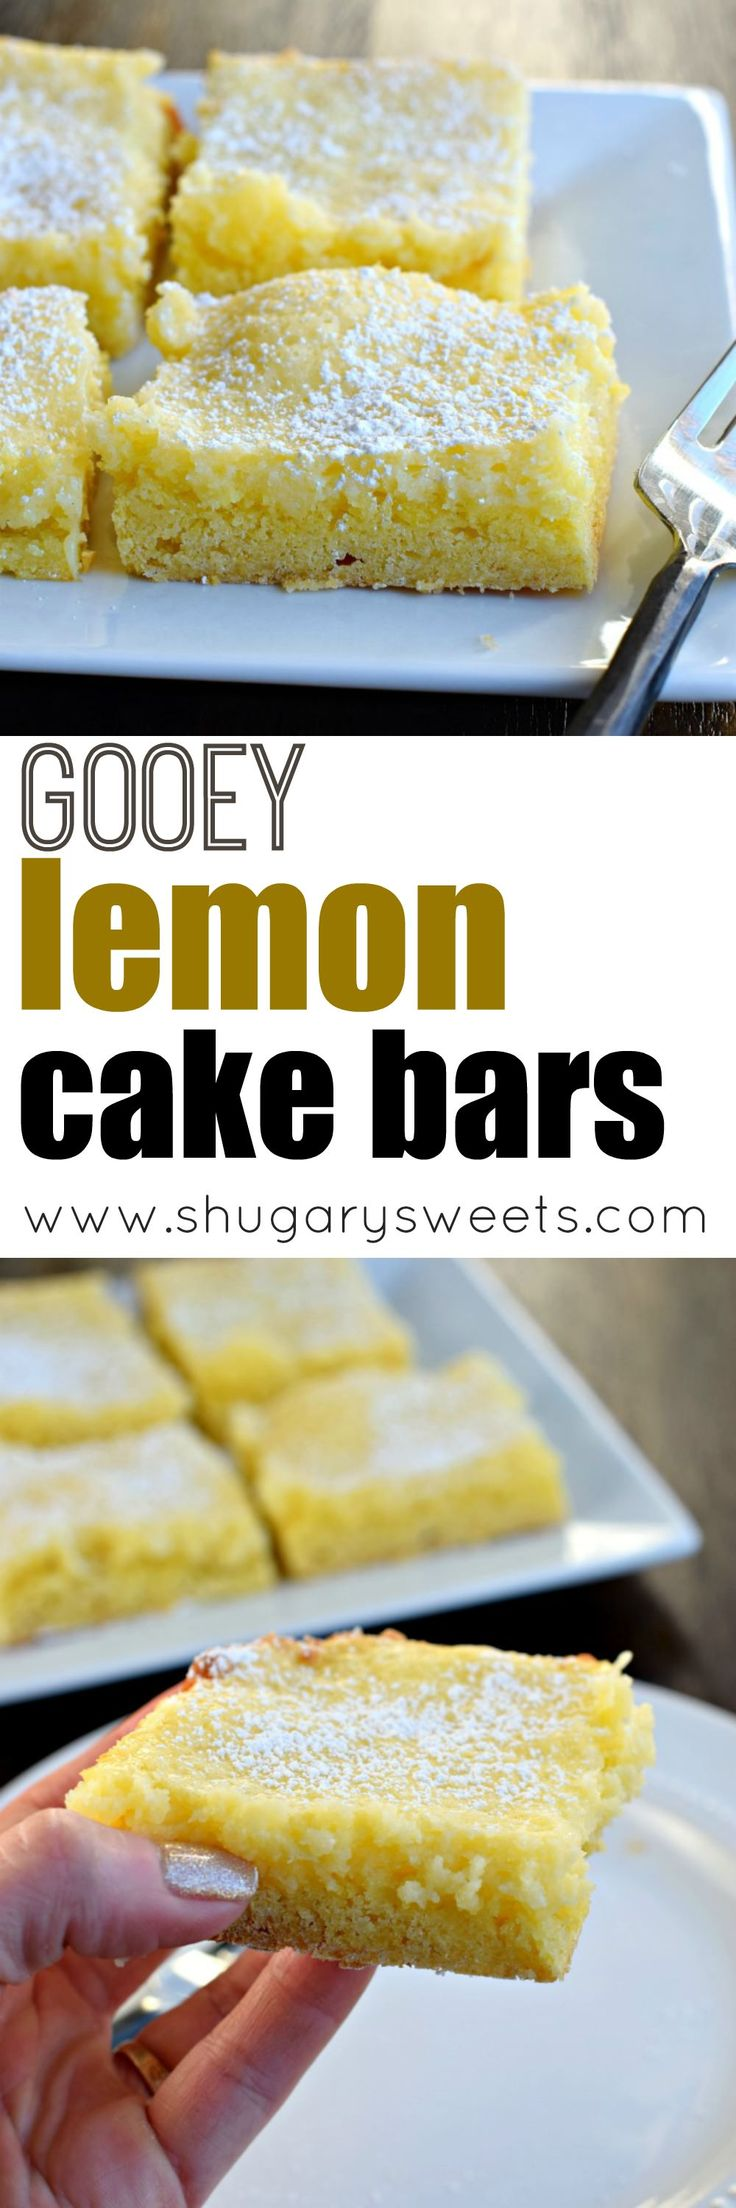 Turn your favorite Gooey Butter Cake into a Lemon dessert! Gooey Lemon Cake Bars will make you quite happy, and nobody has to know you started with a mix!